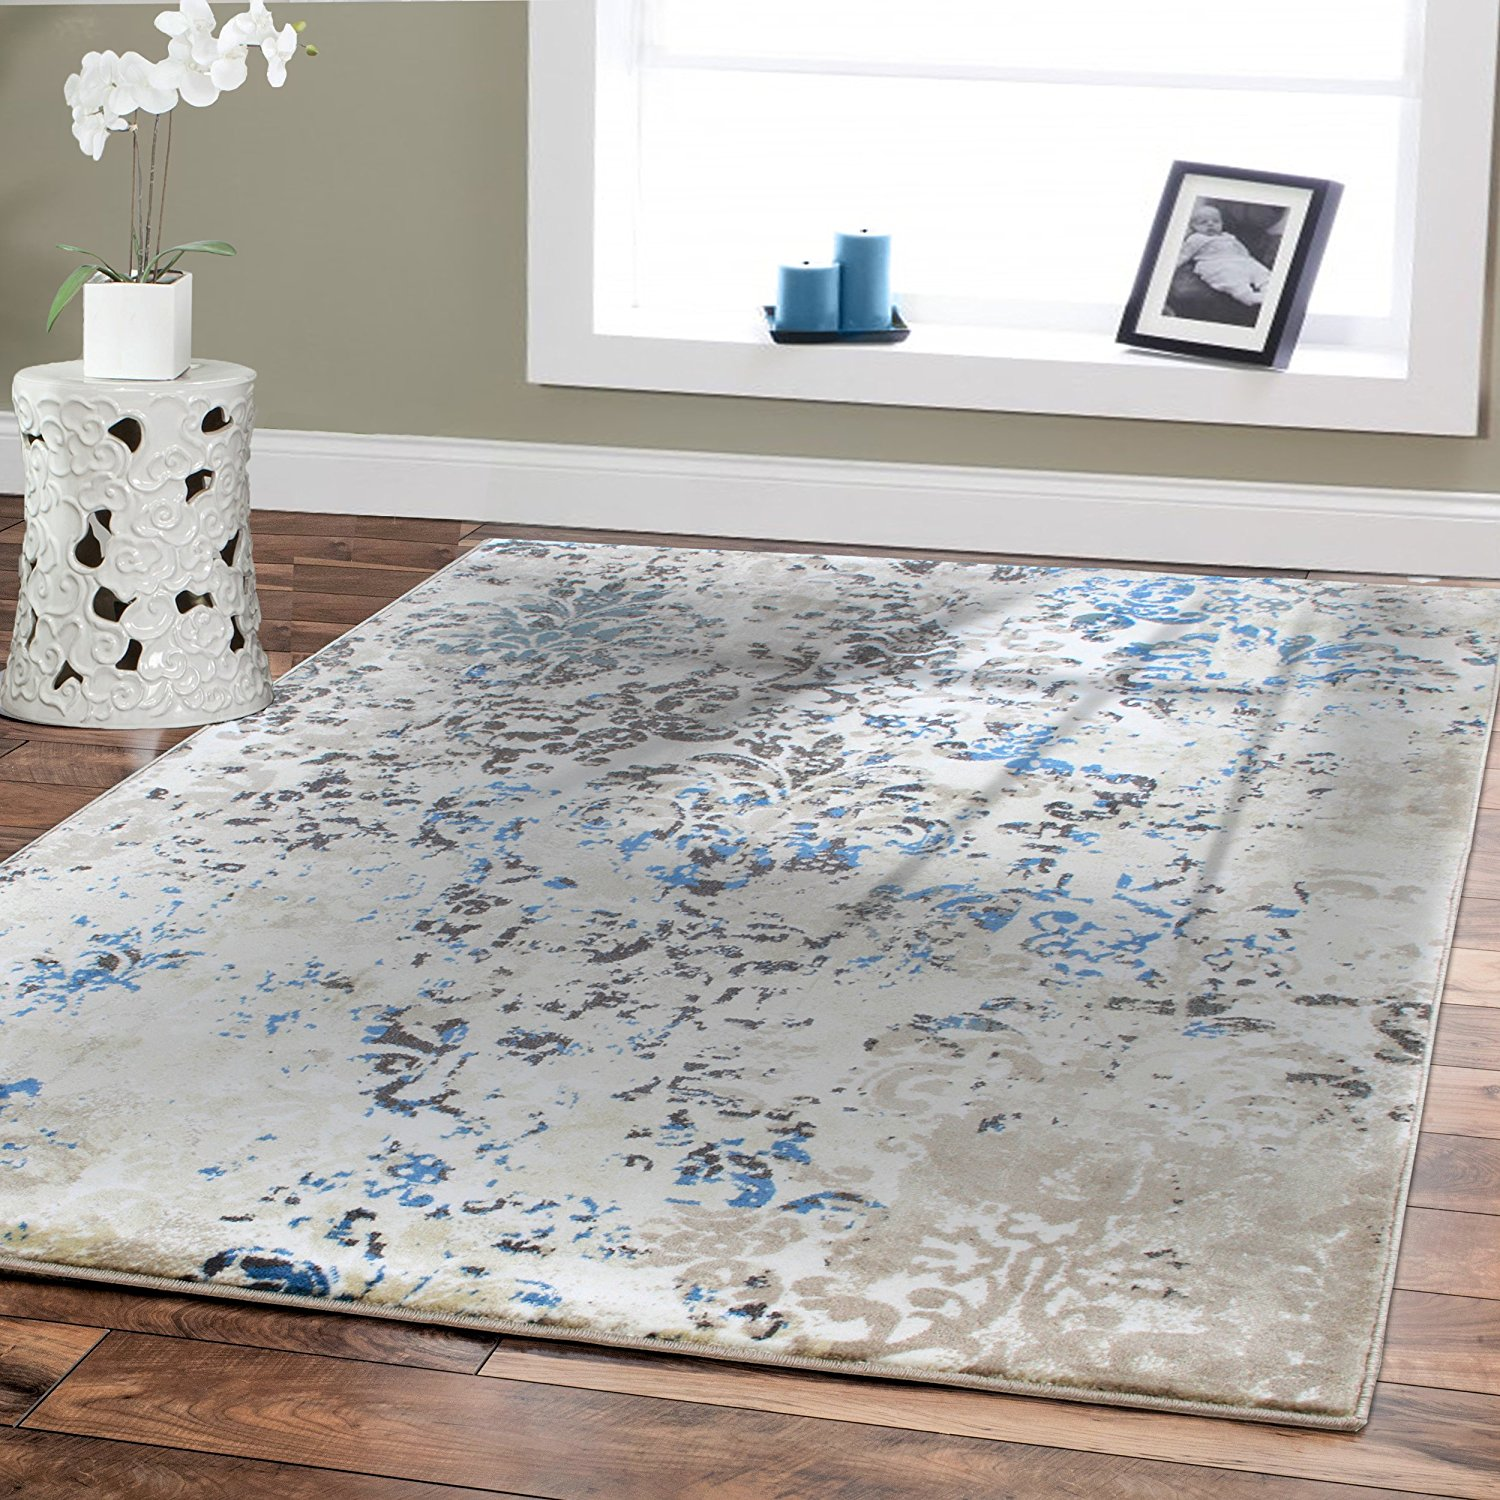 luxury high quality rugs for living room 5x8 cream blue dynamix modern rug FIOCXDX